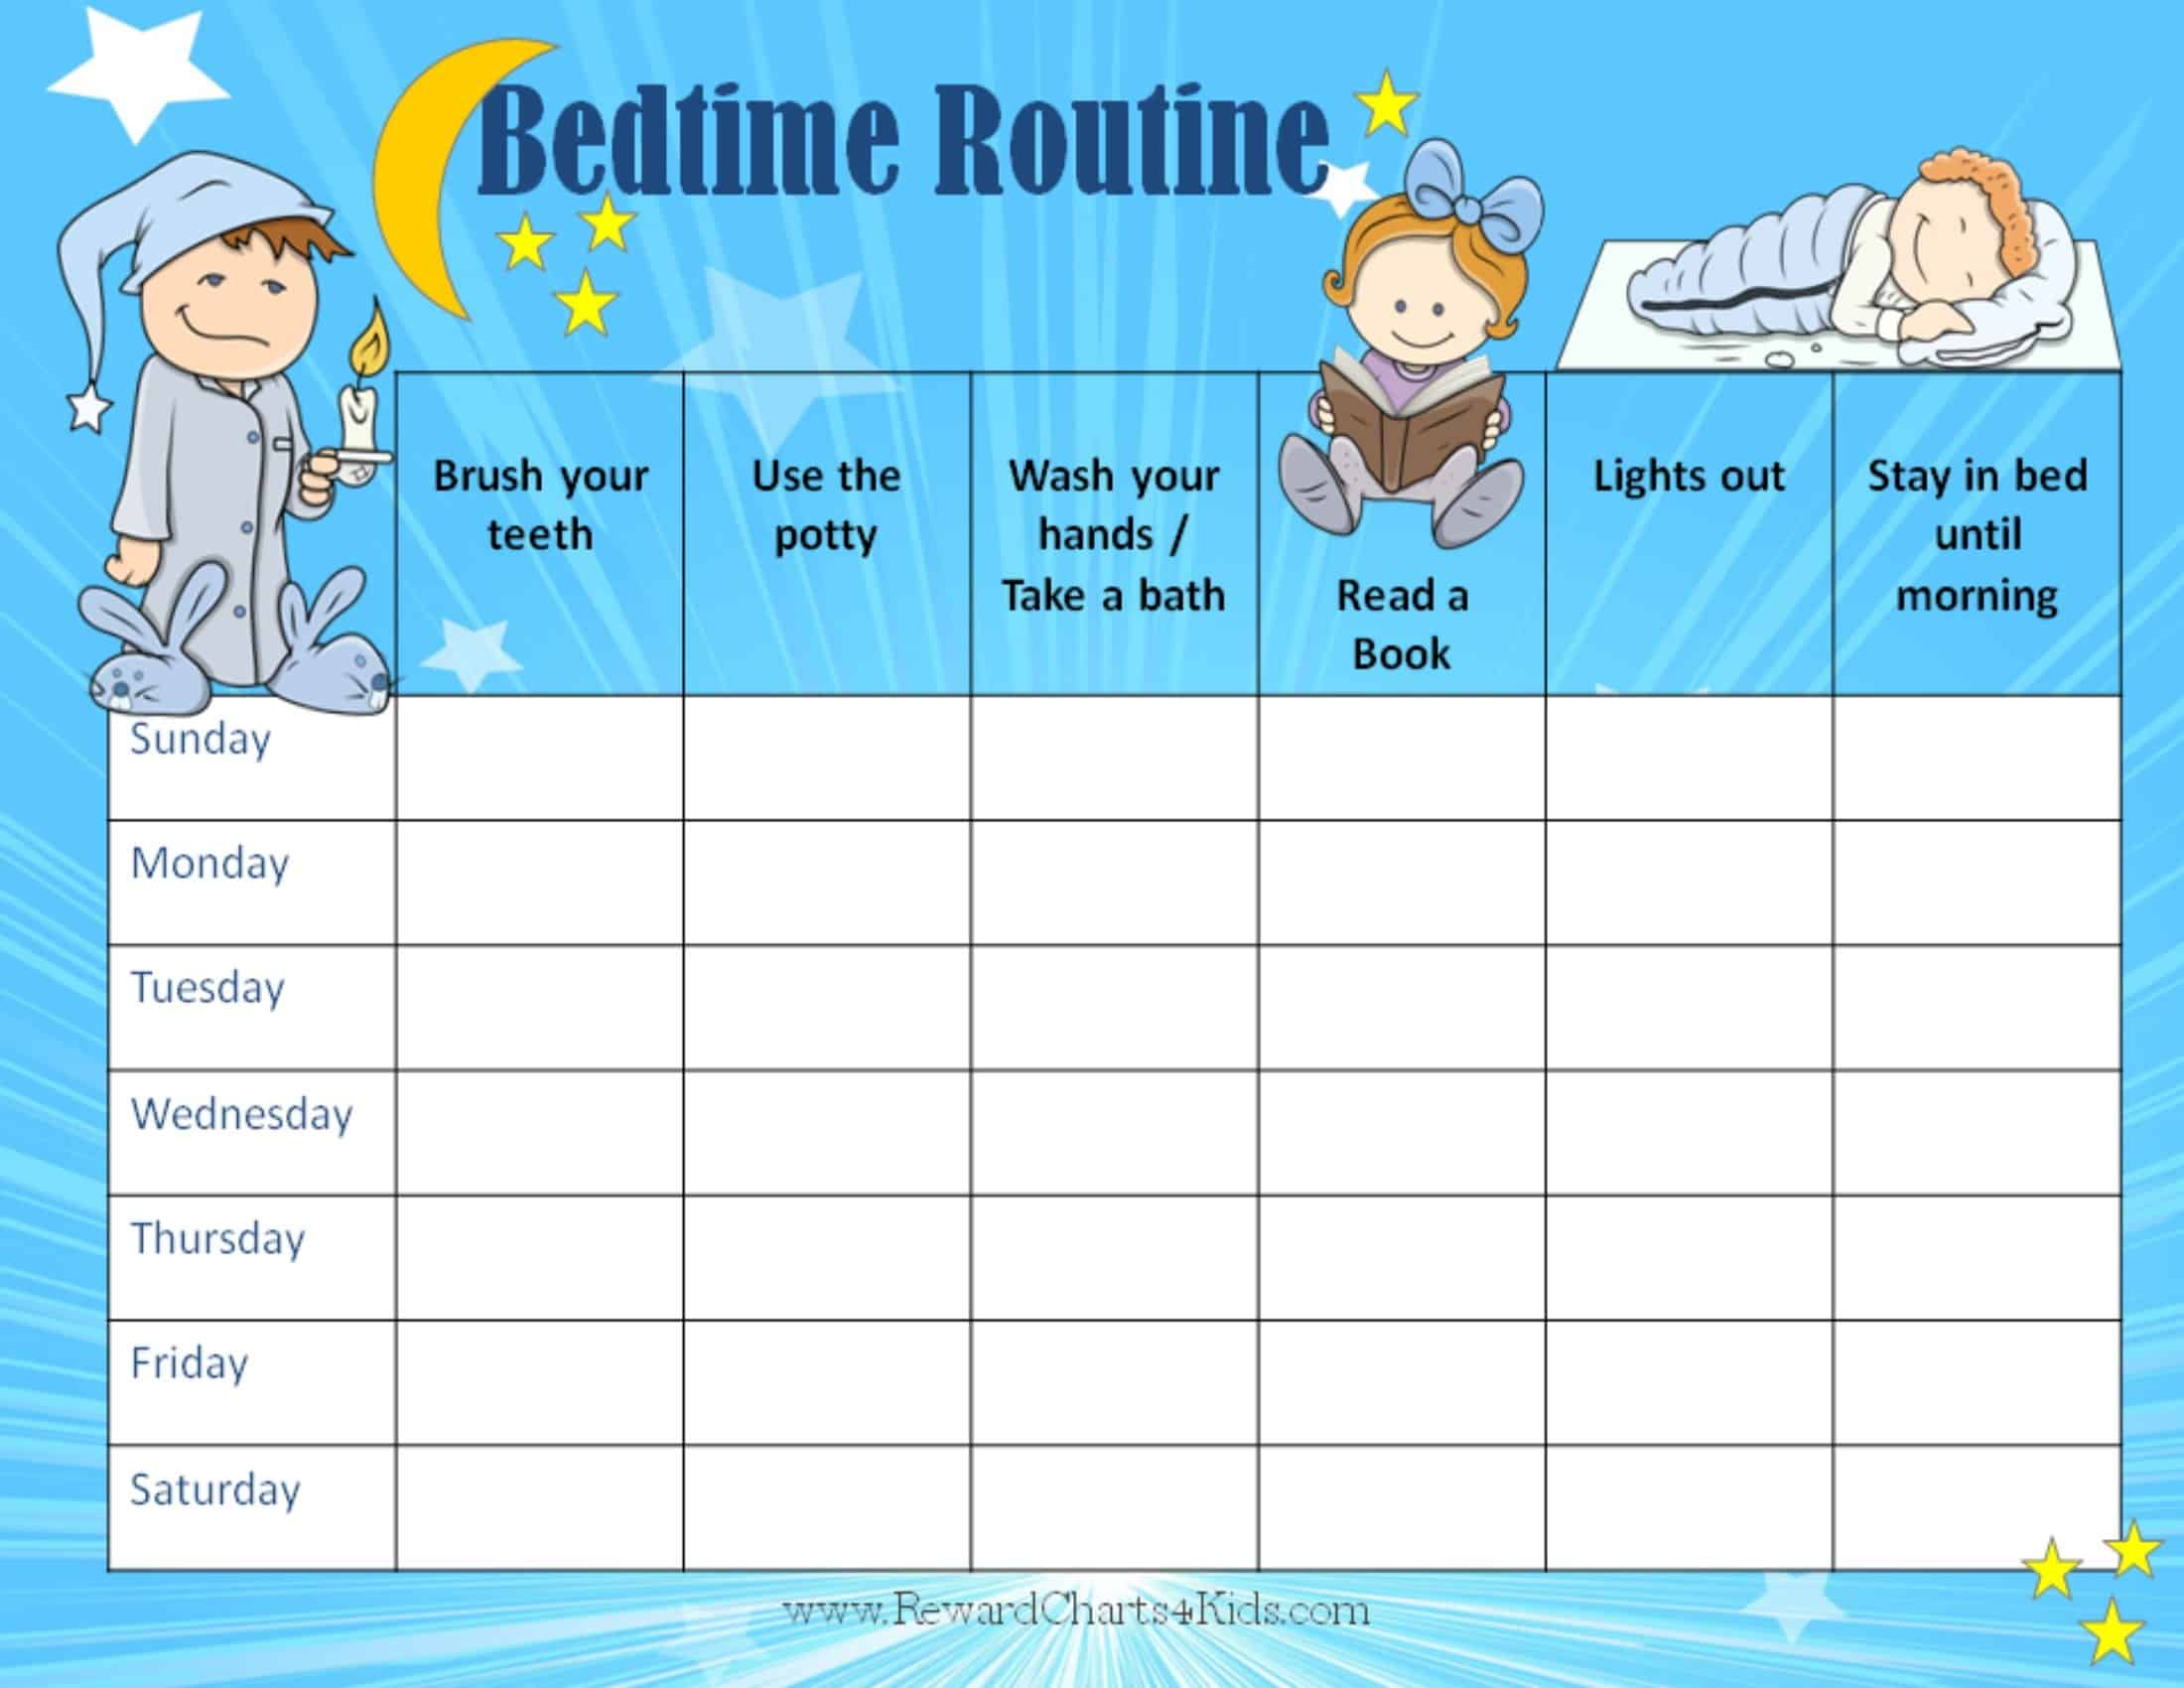 Free Printable Bedtime Routine Chart